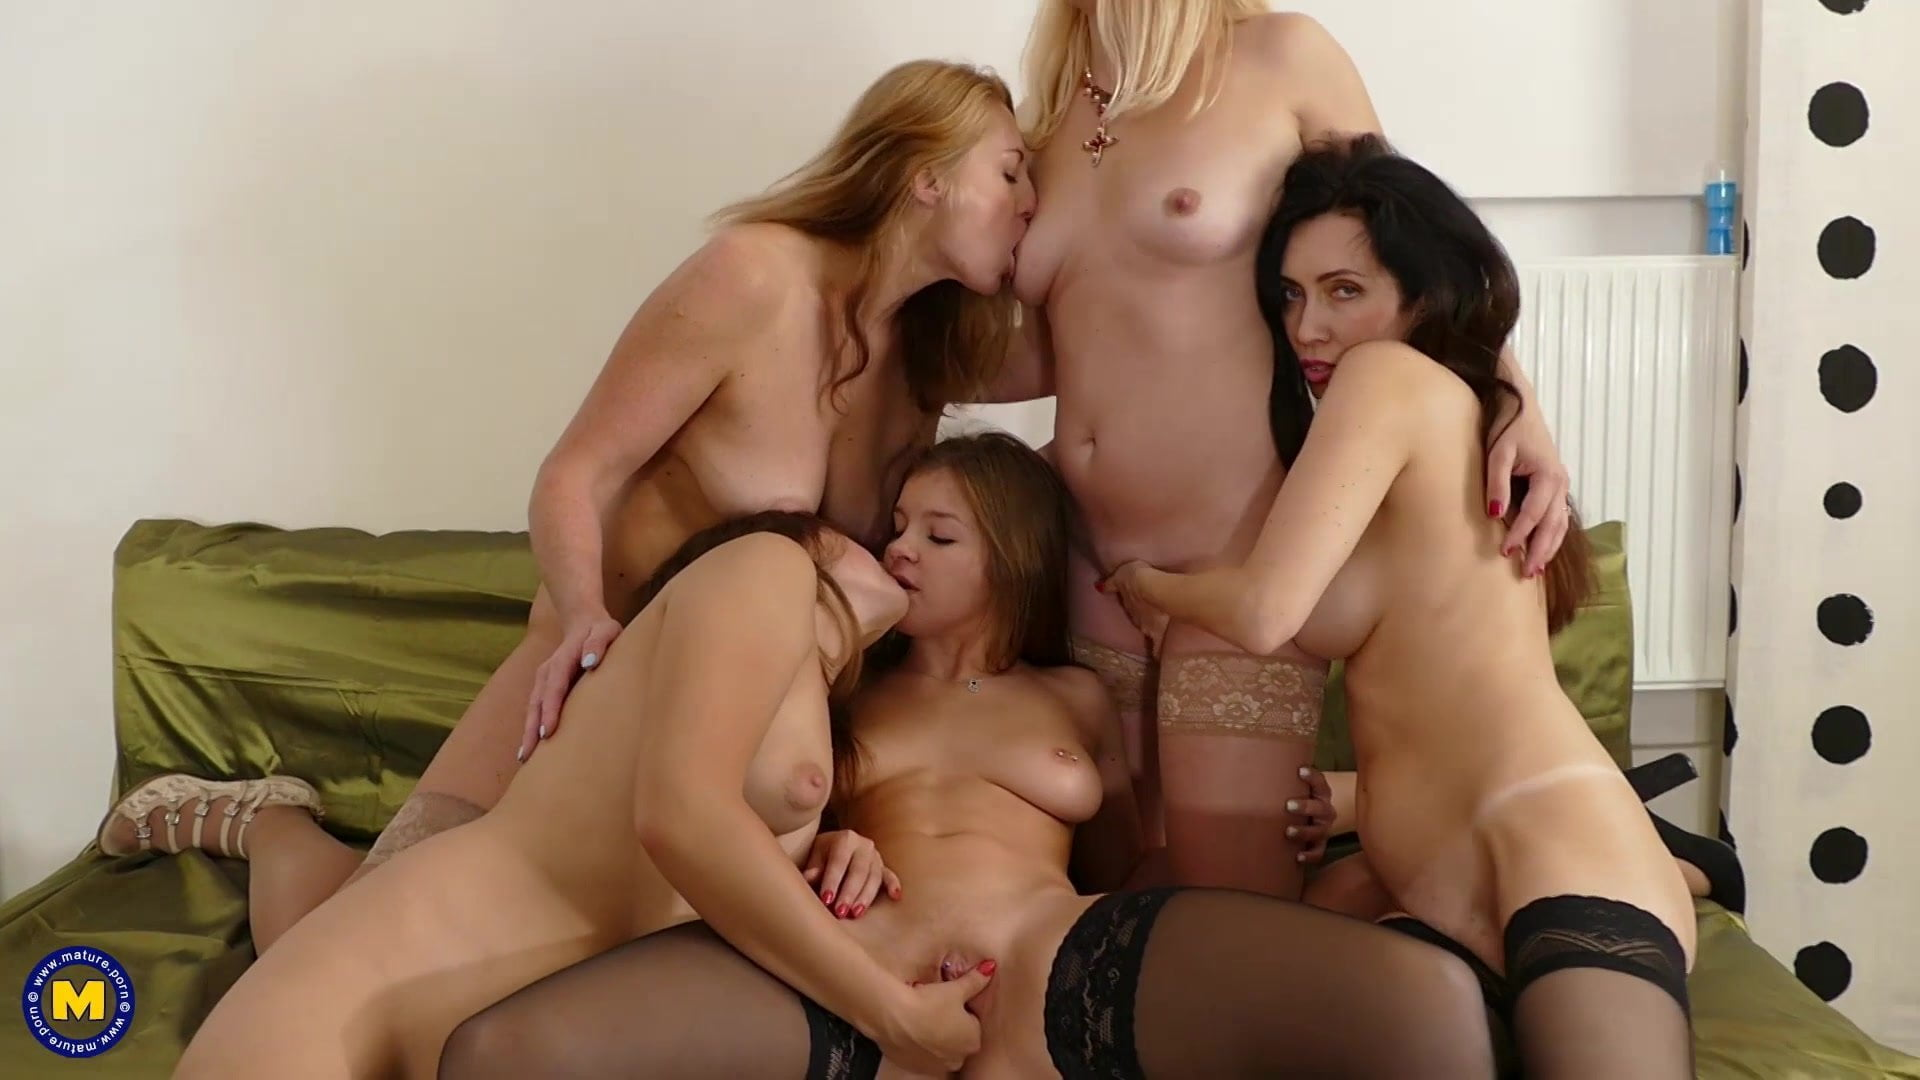 Group intercourse with young and old lesbians